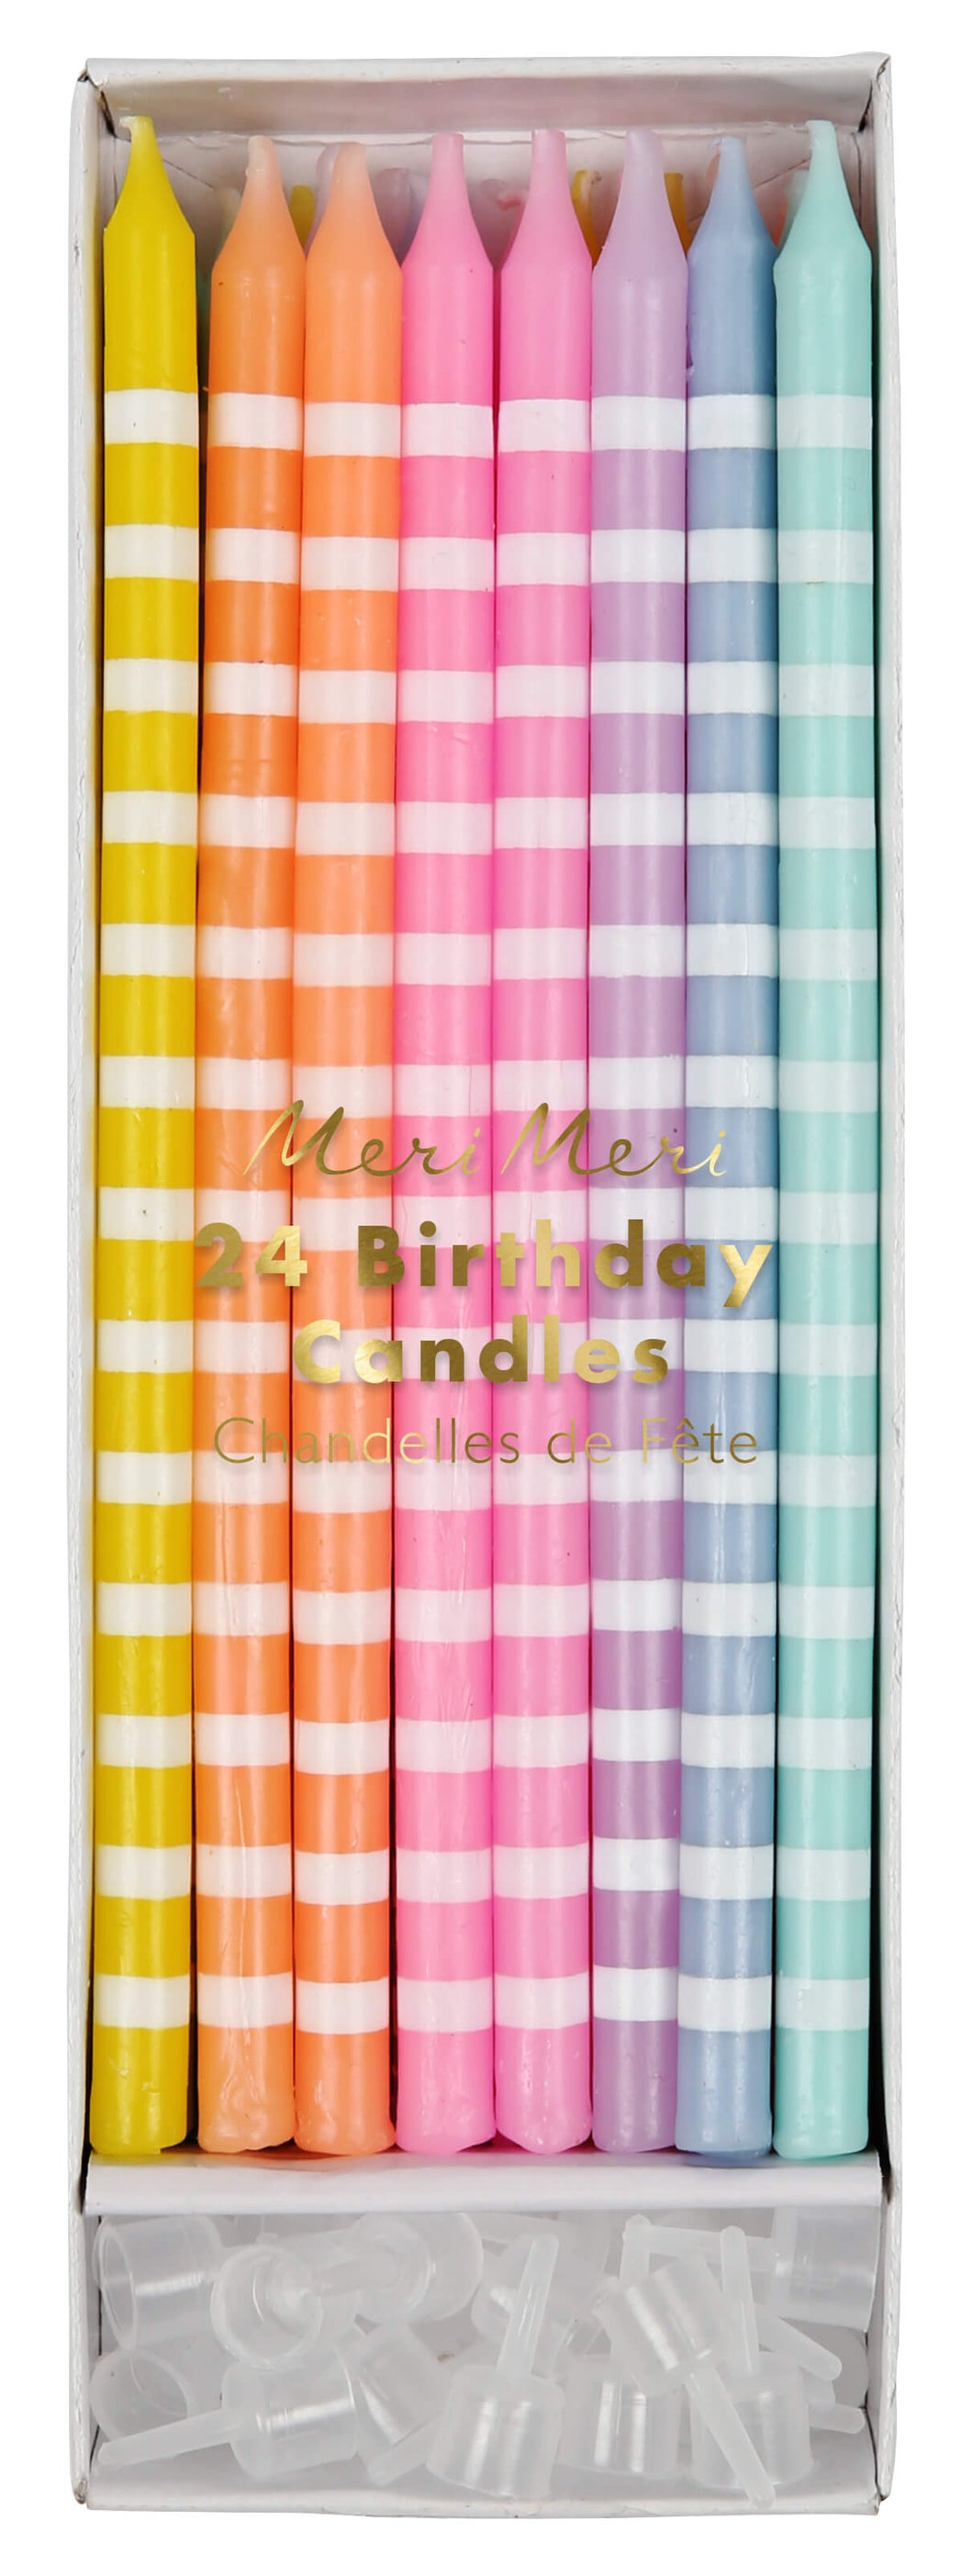 Long Pastel Stripey Cake Candles - Meri Meri